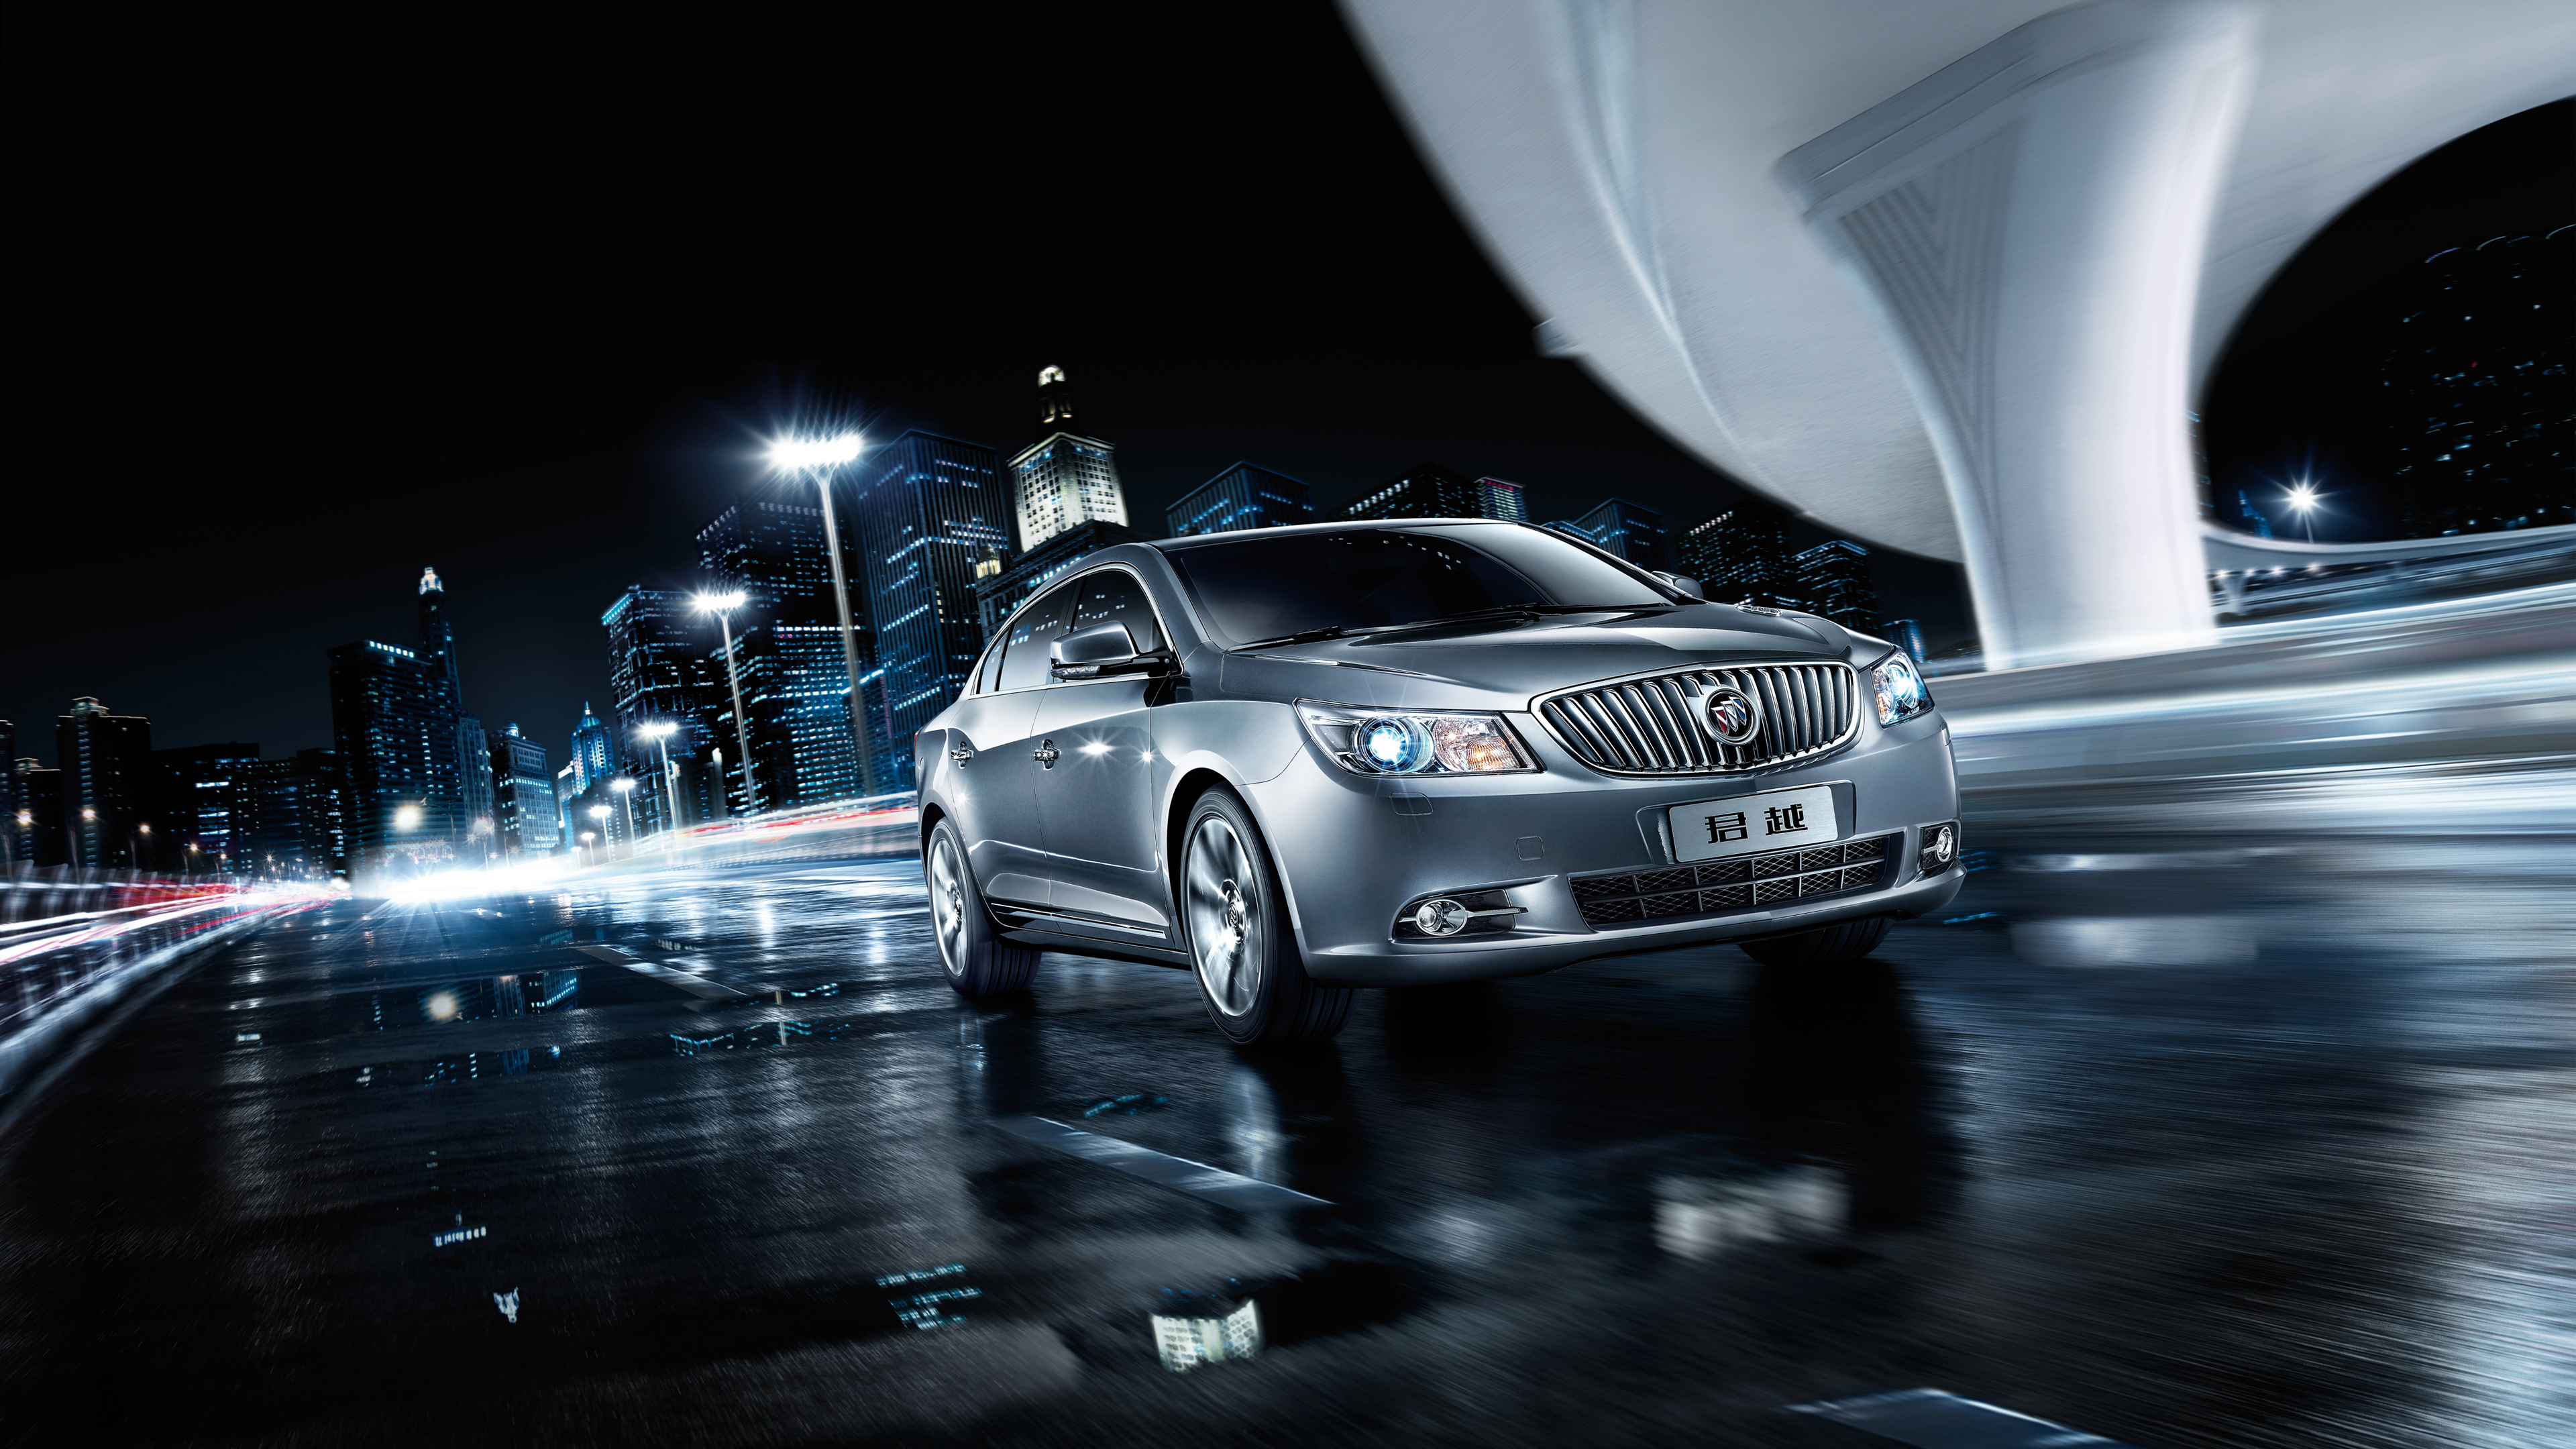 2017 buick lacrosse 4k wallpaper hd car wallpapers id - Wallpaper hd 4k car ...